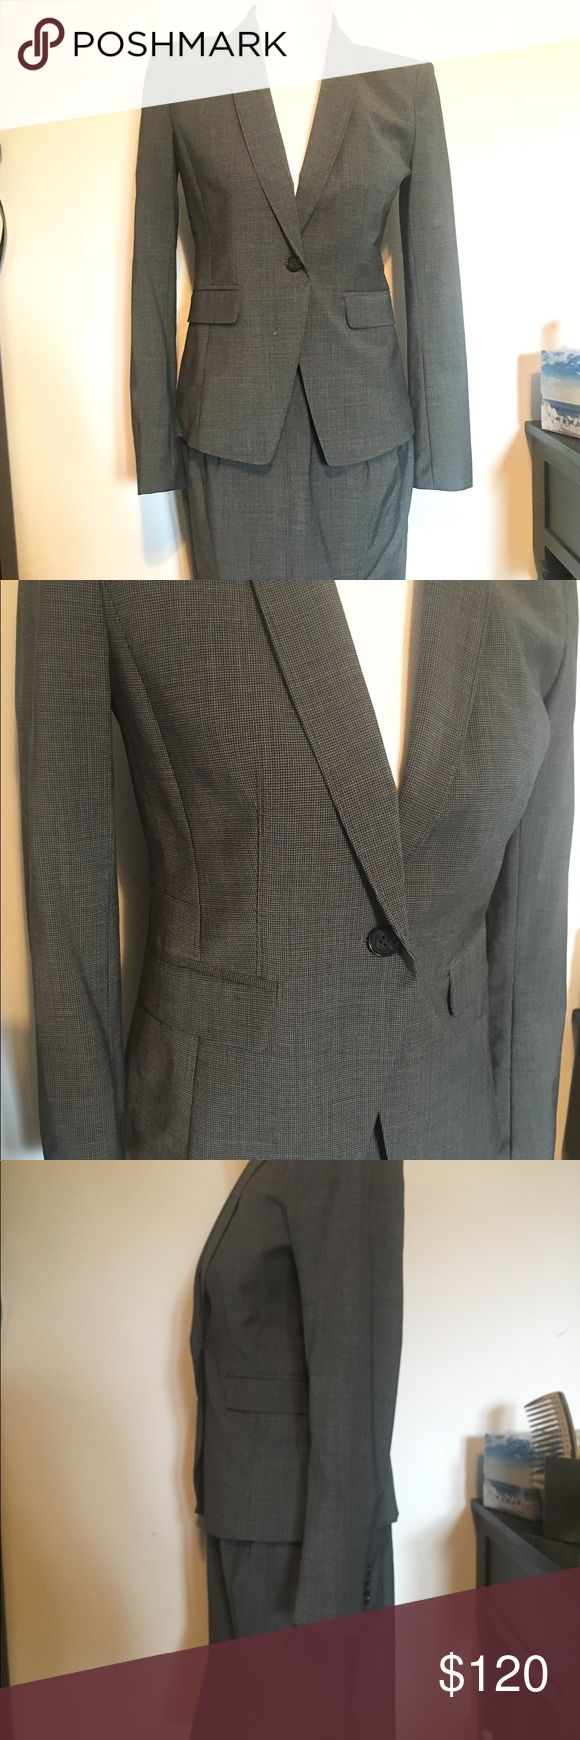 Ann Taylor suit and skirt set grey NWT size 2 / 4 Super smart great fit on both the jacket and skirt. The perfect interview outfit! Overall color is grey with black check. Jacket is a 2 and the skirt is a 4. Never worn. 87% wool with a bit of Lycra. It was originally $189 for the jacket alone! Would be willing to separate. Message for details. Thanks for looking! Ann Taylor Jackets & Coats Blazers